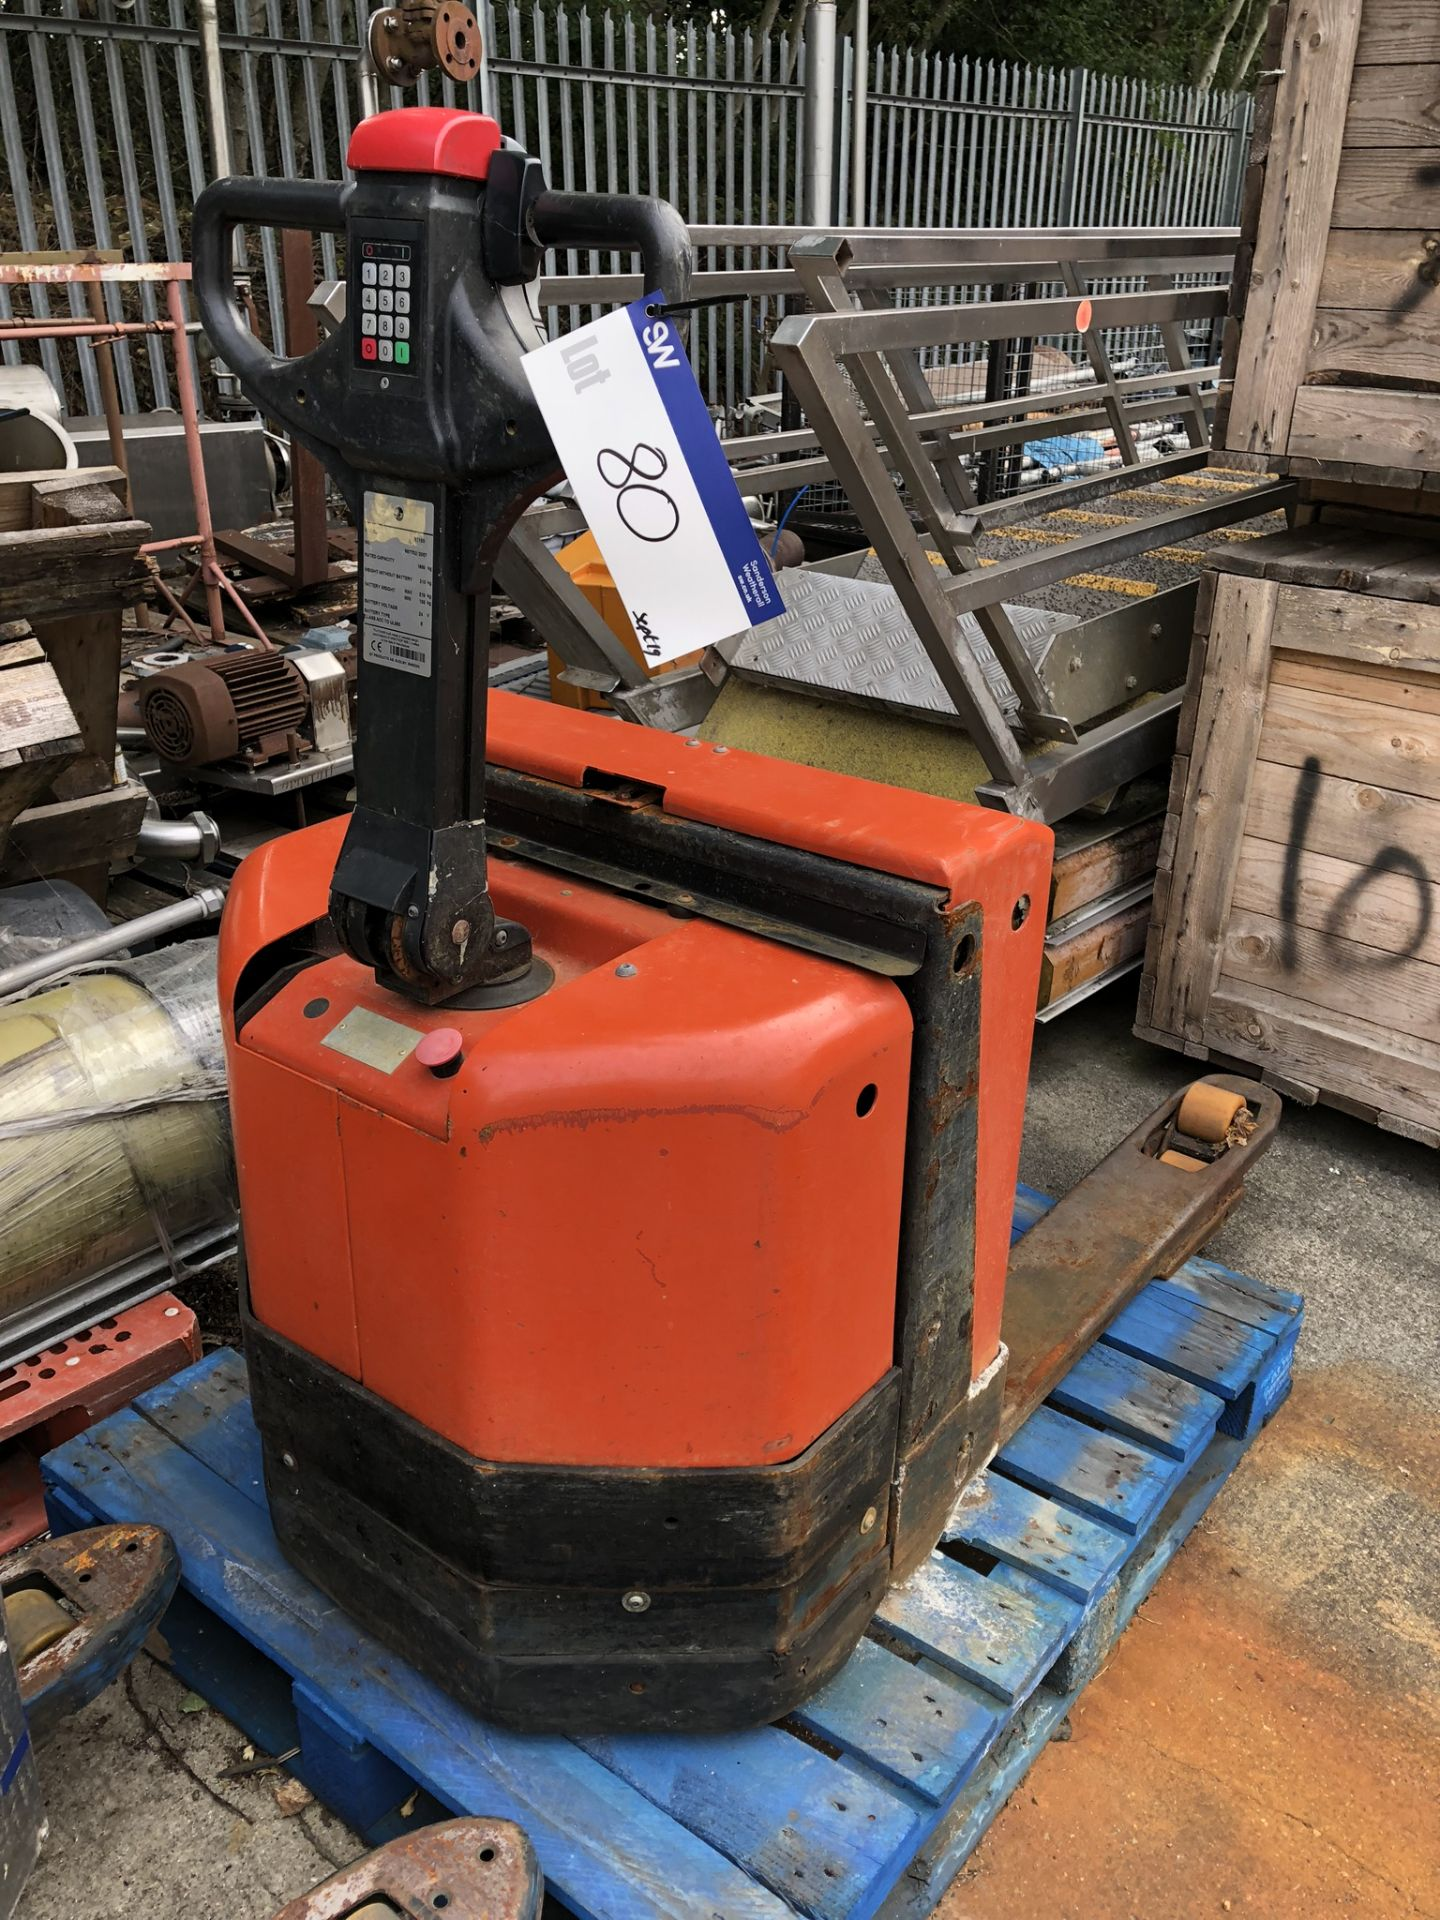 Lot 80 - BT LWE180 1800kg Electric Pallet Truck, serial no. 987702, year of manufacture 2007, lift out charge